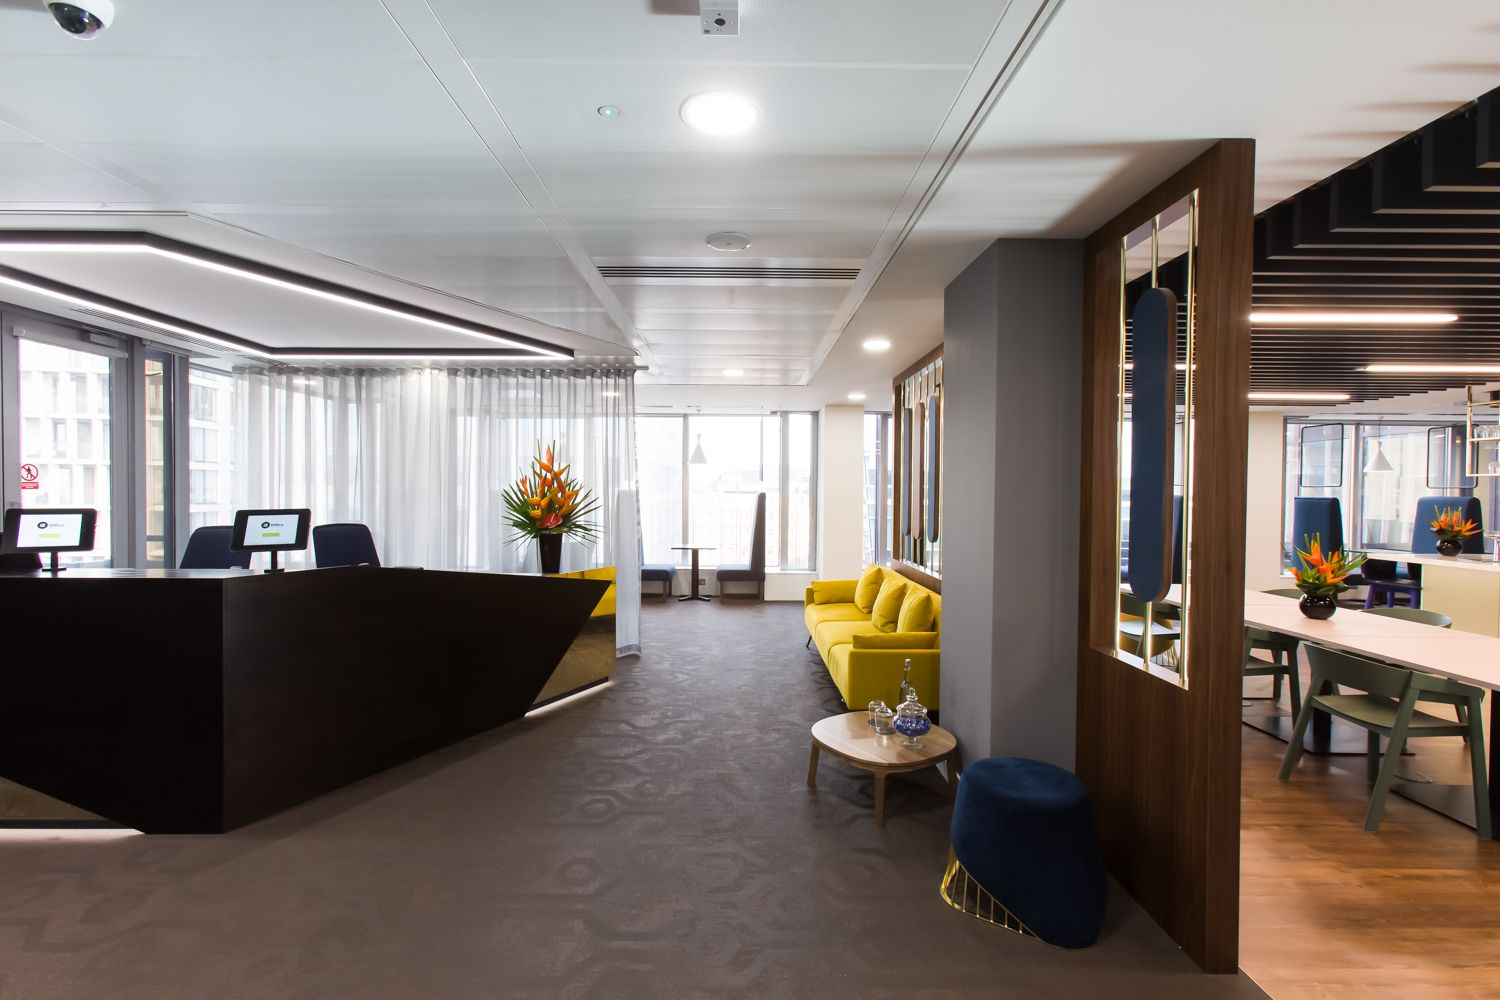 contemporary office spaces. Contemporary Office Space In Victoria, London. Fit Out Completed By C And S Ltd Spaces F